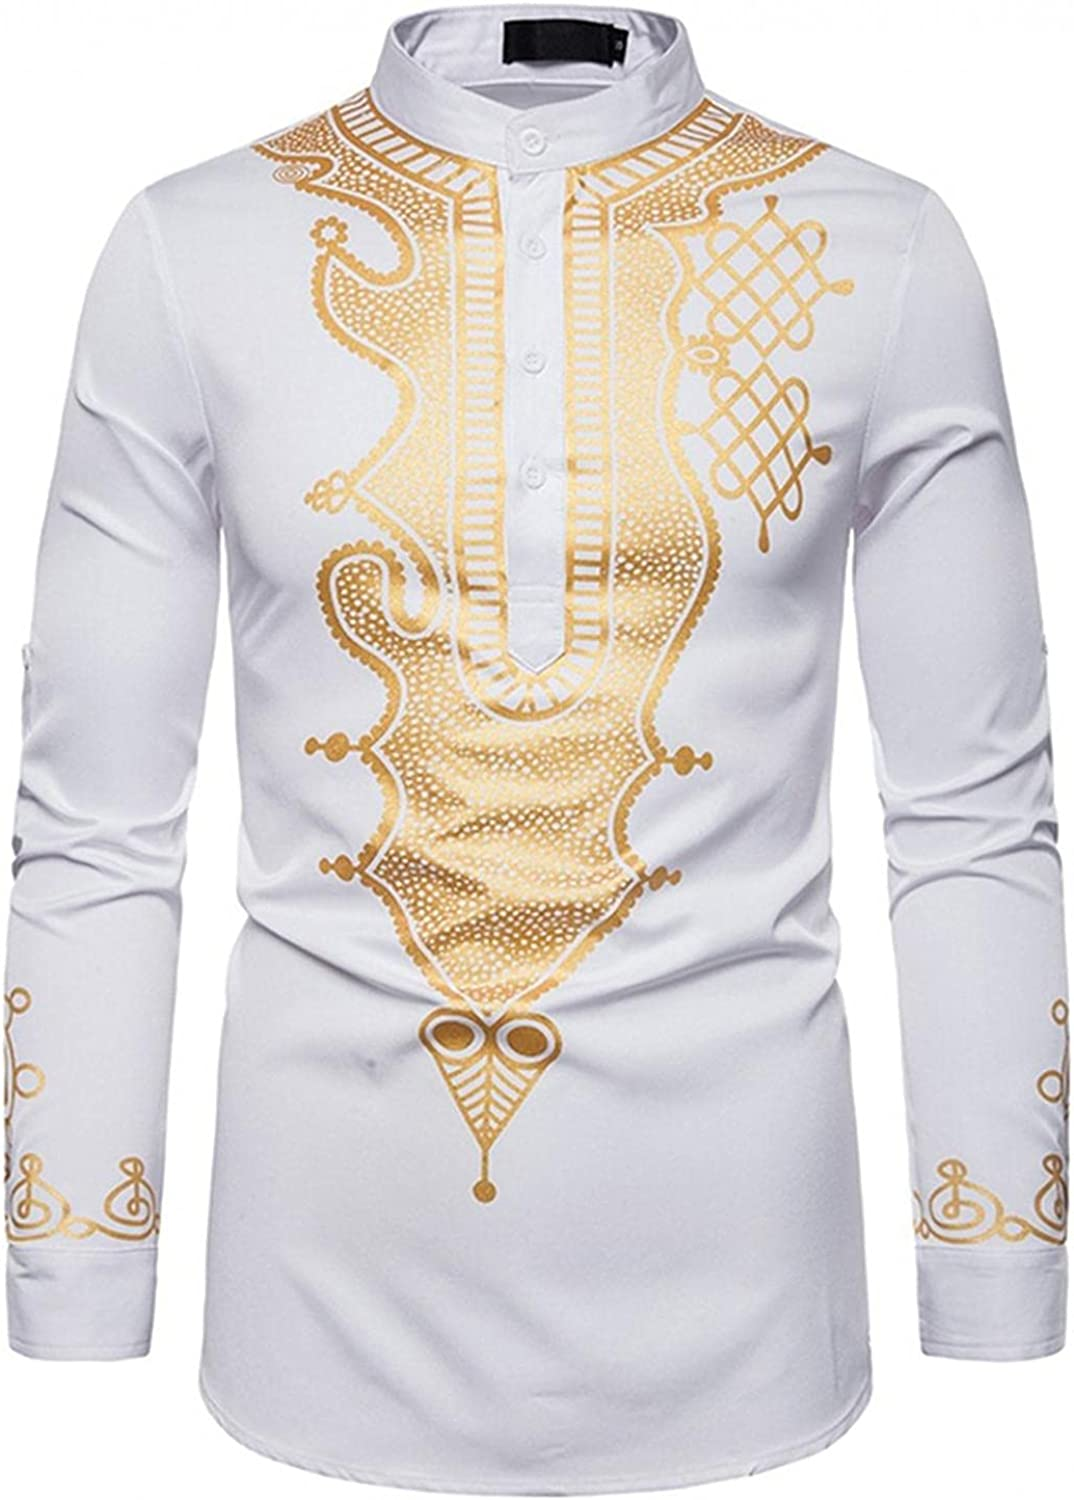 Aayomet Men's Tee Shirts Vintage Graphic Tops Casual Workout Athletic Long Sleeve Pullover T-Shirts Blouses for Men